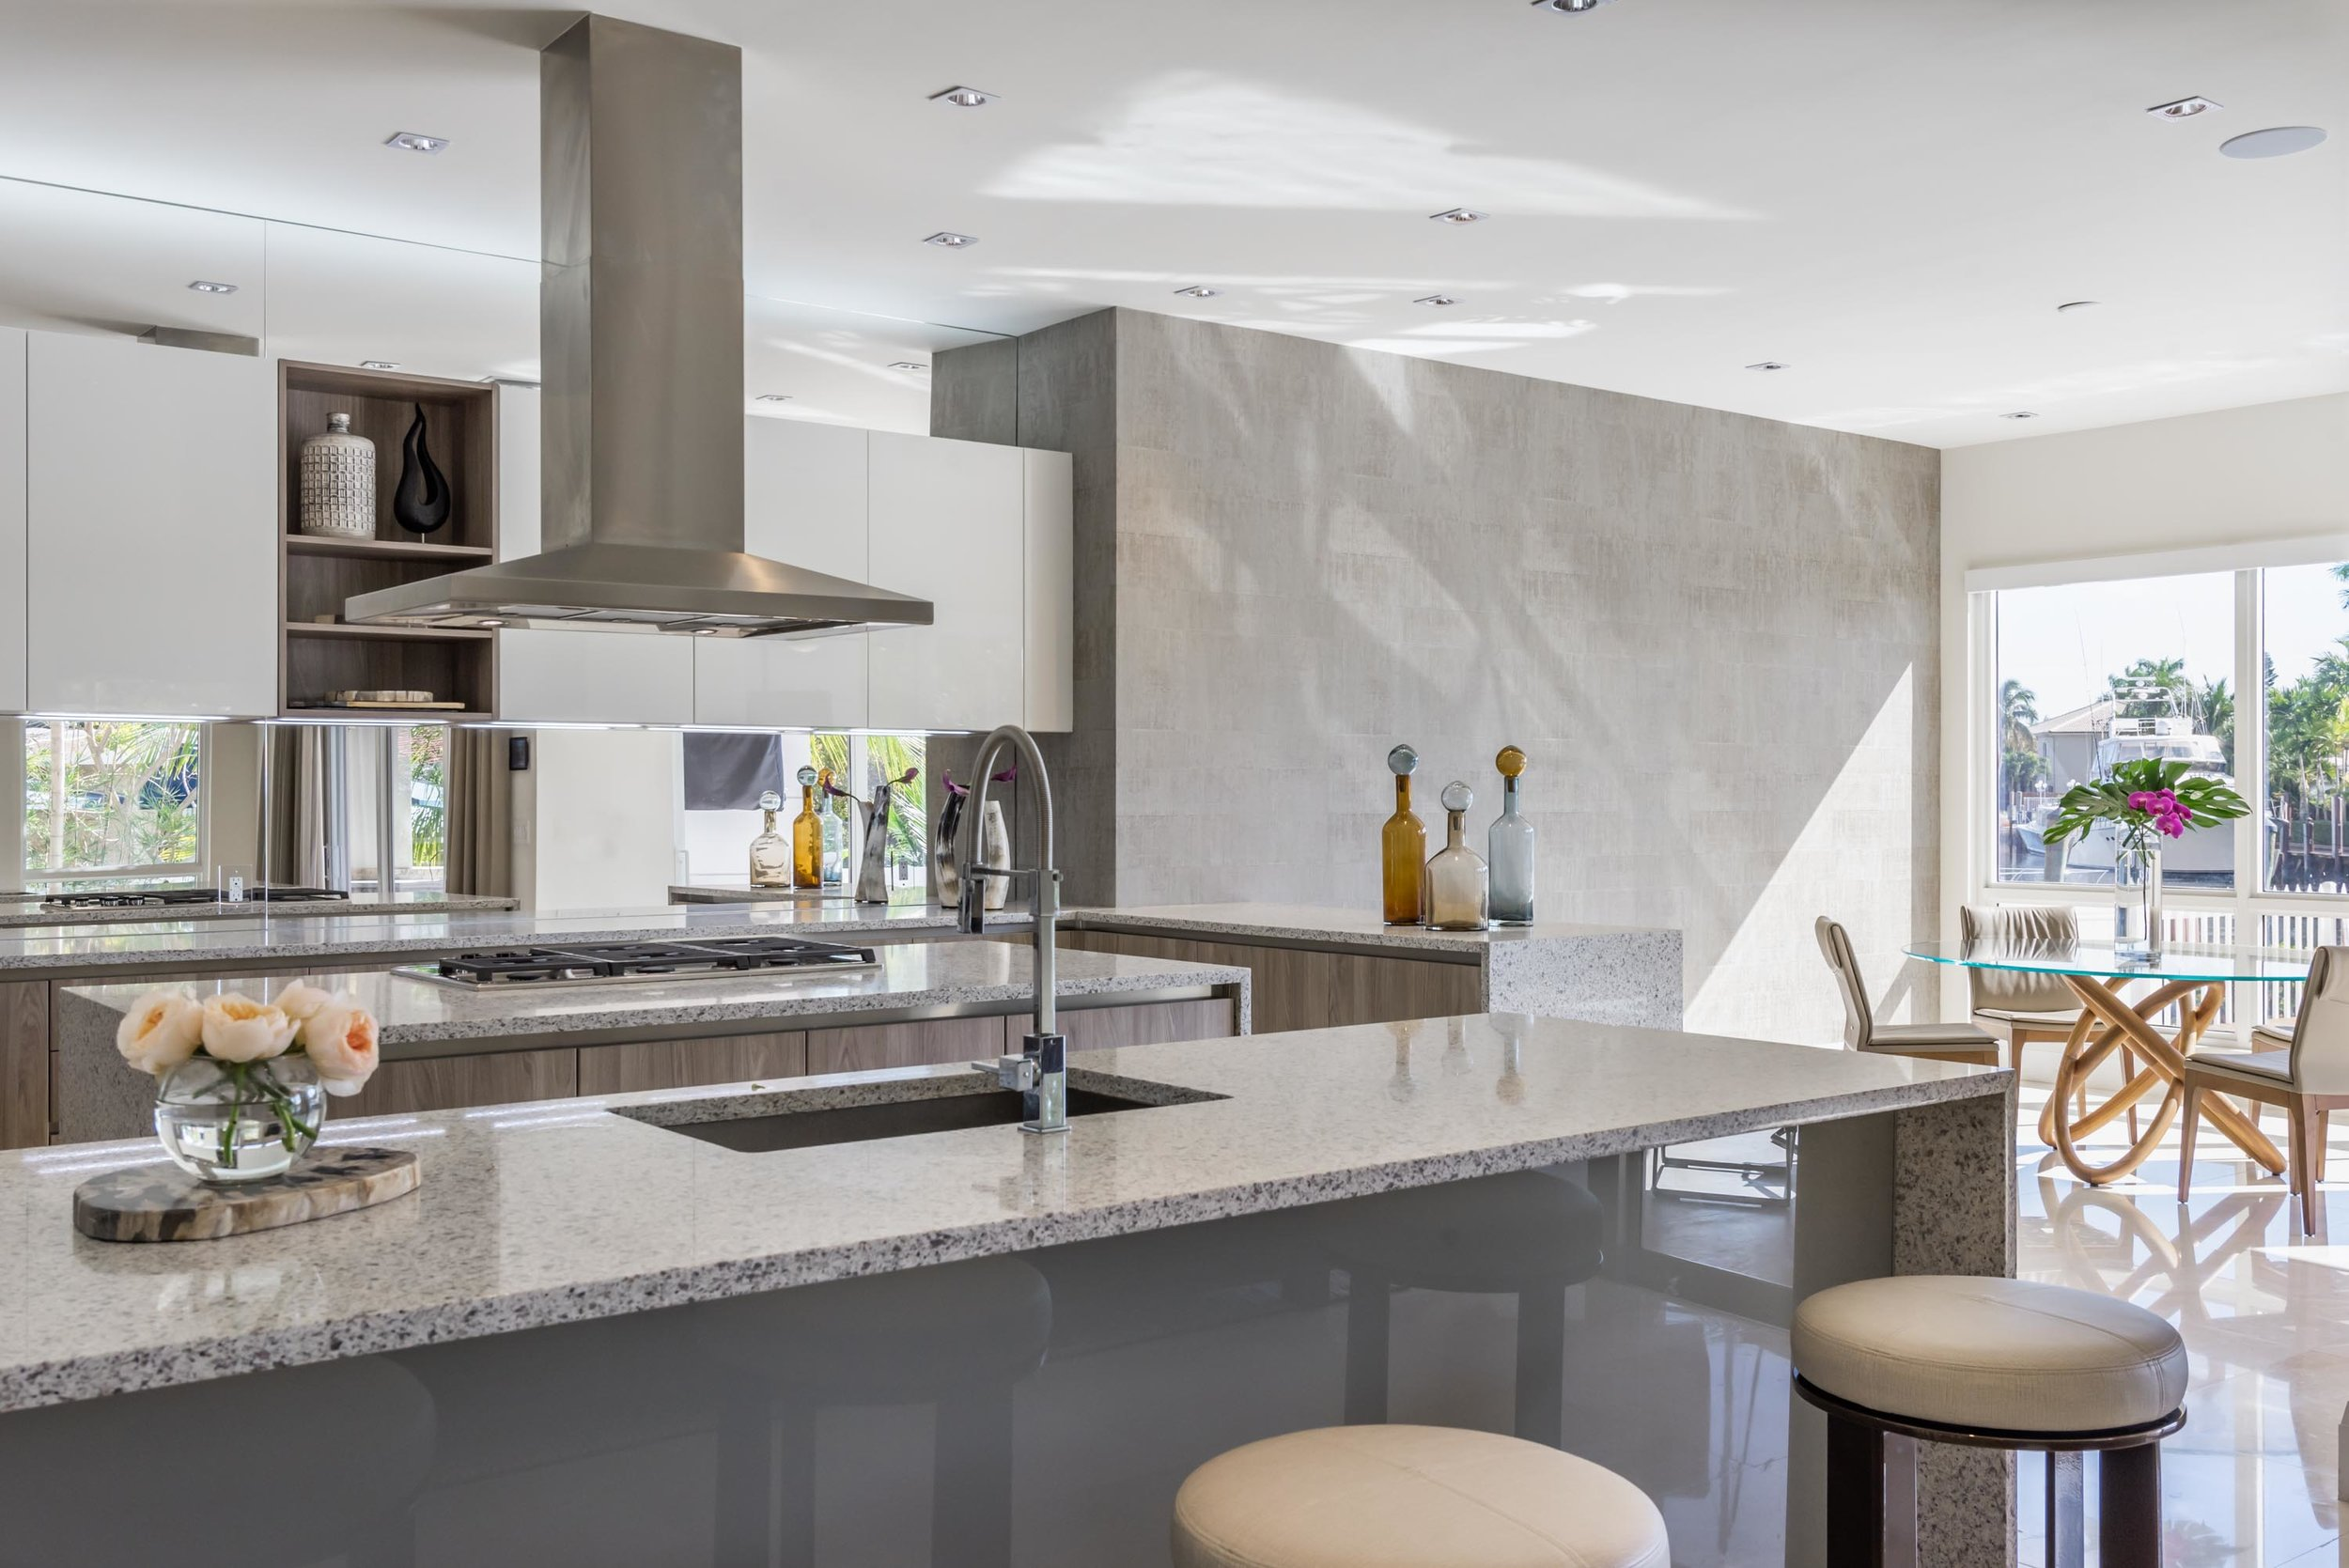 Waterfront modern kitchen area with ceramic countertop, bar stools, exhaust hood, ceramic tile floor and cabinet